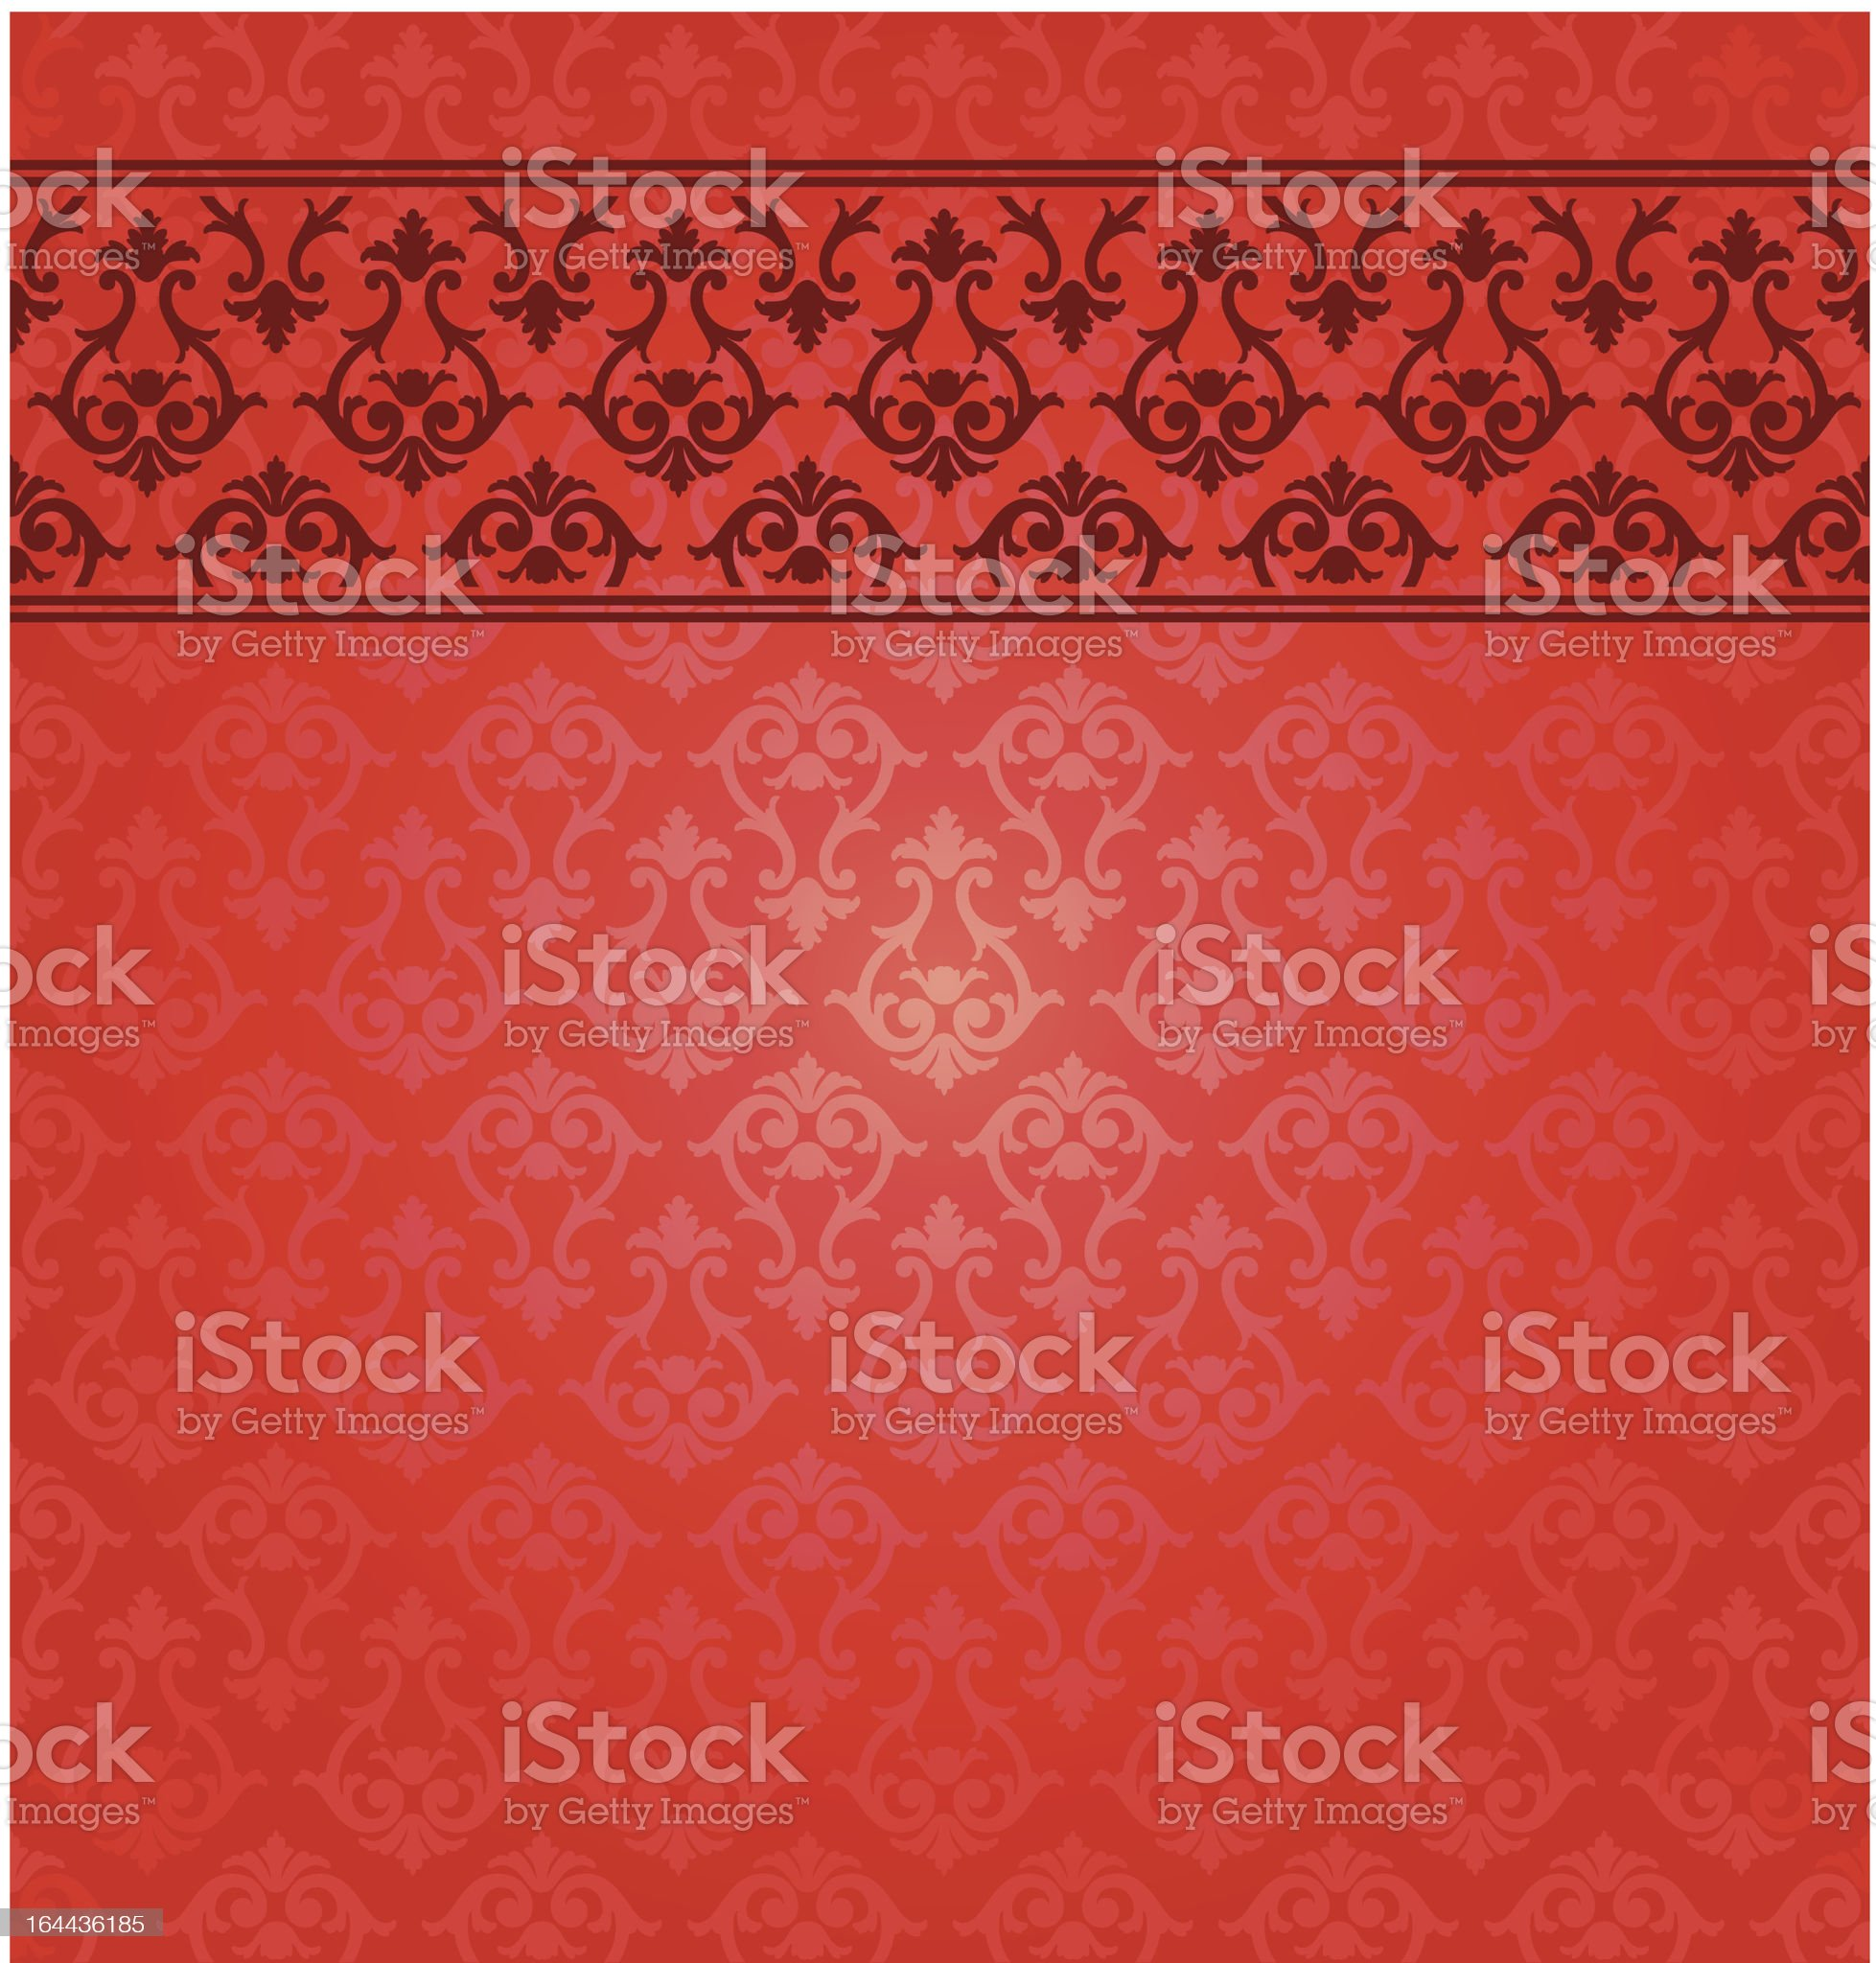 Vector background with ornate royalty-free stock vector art